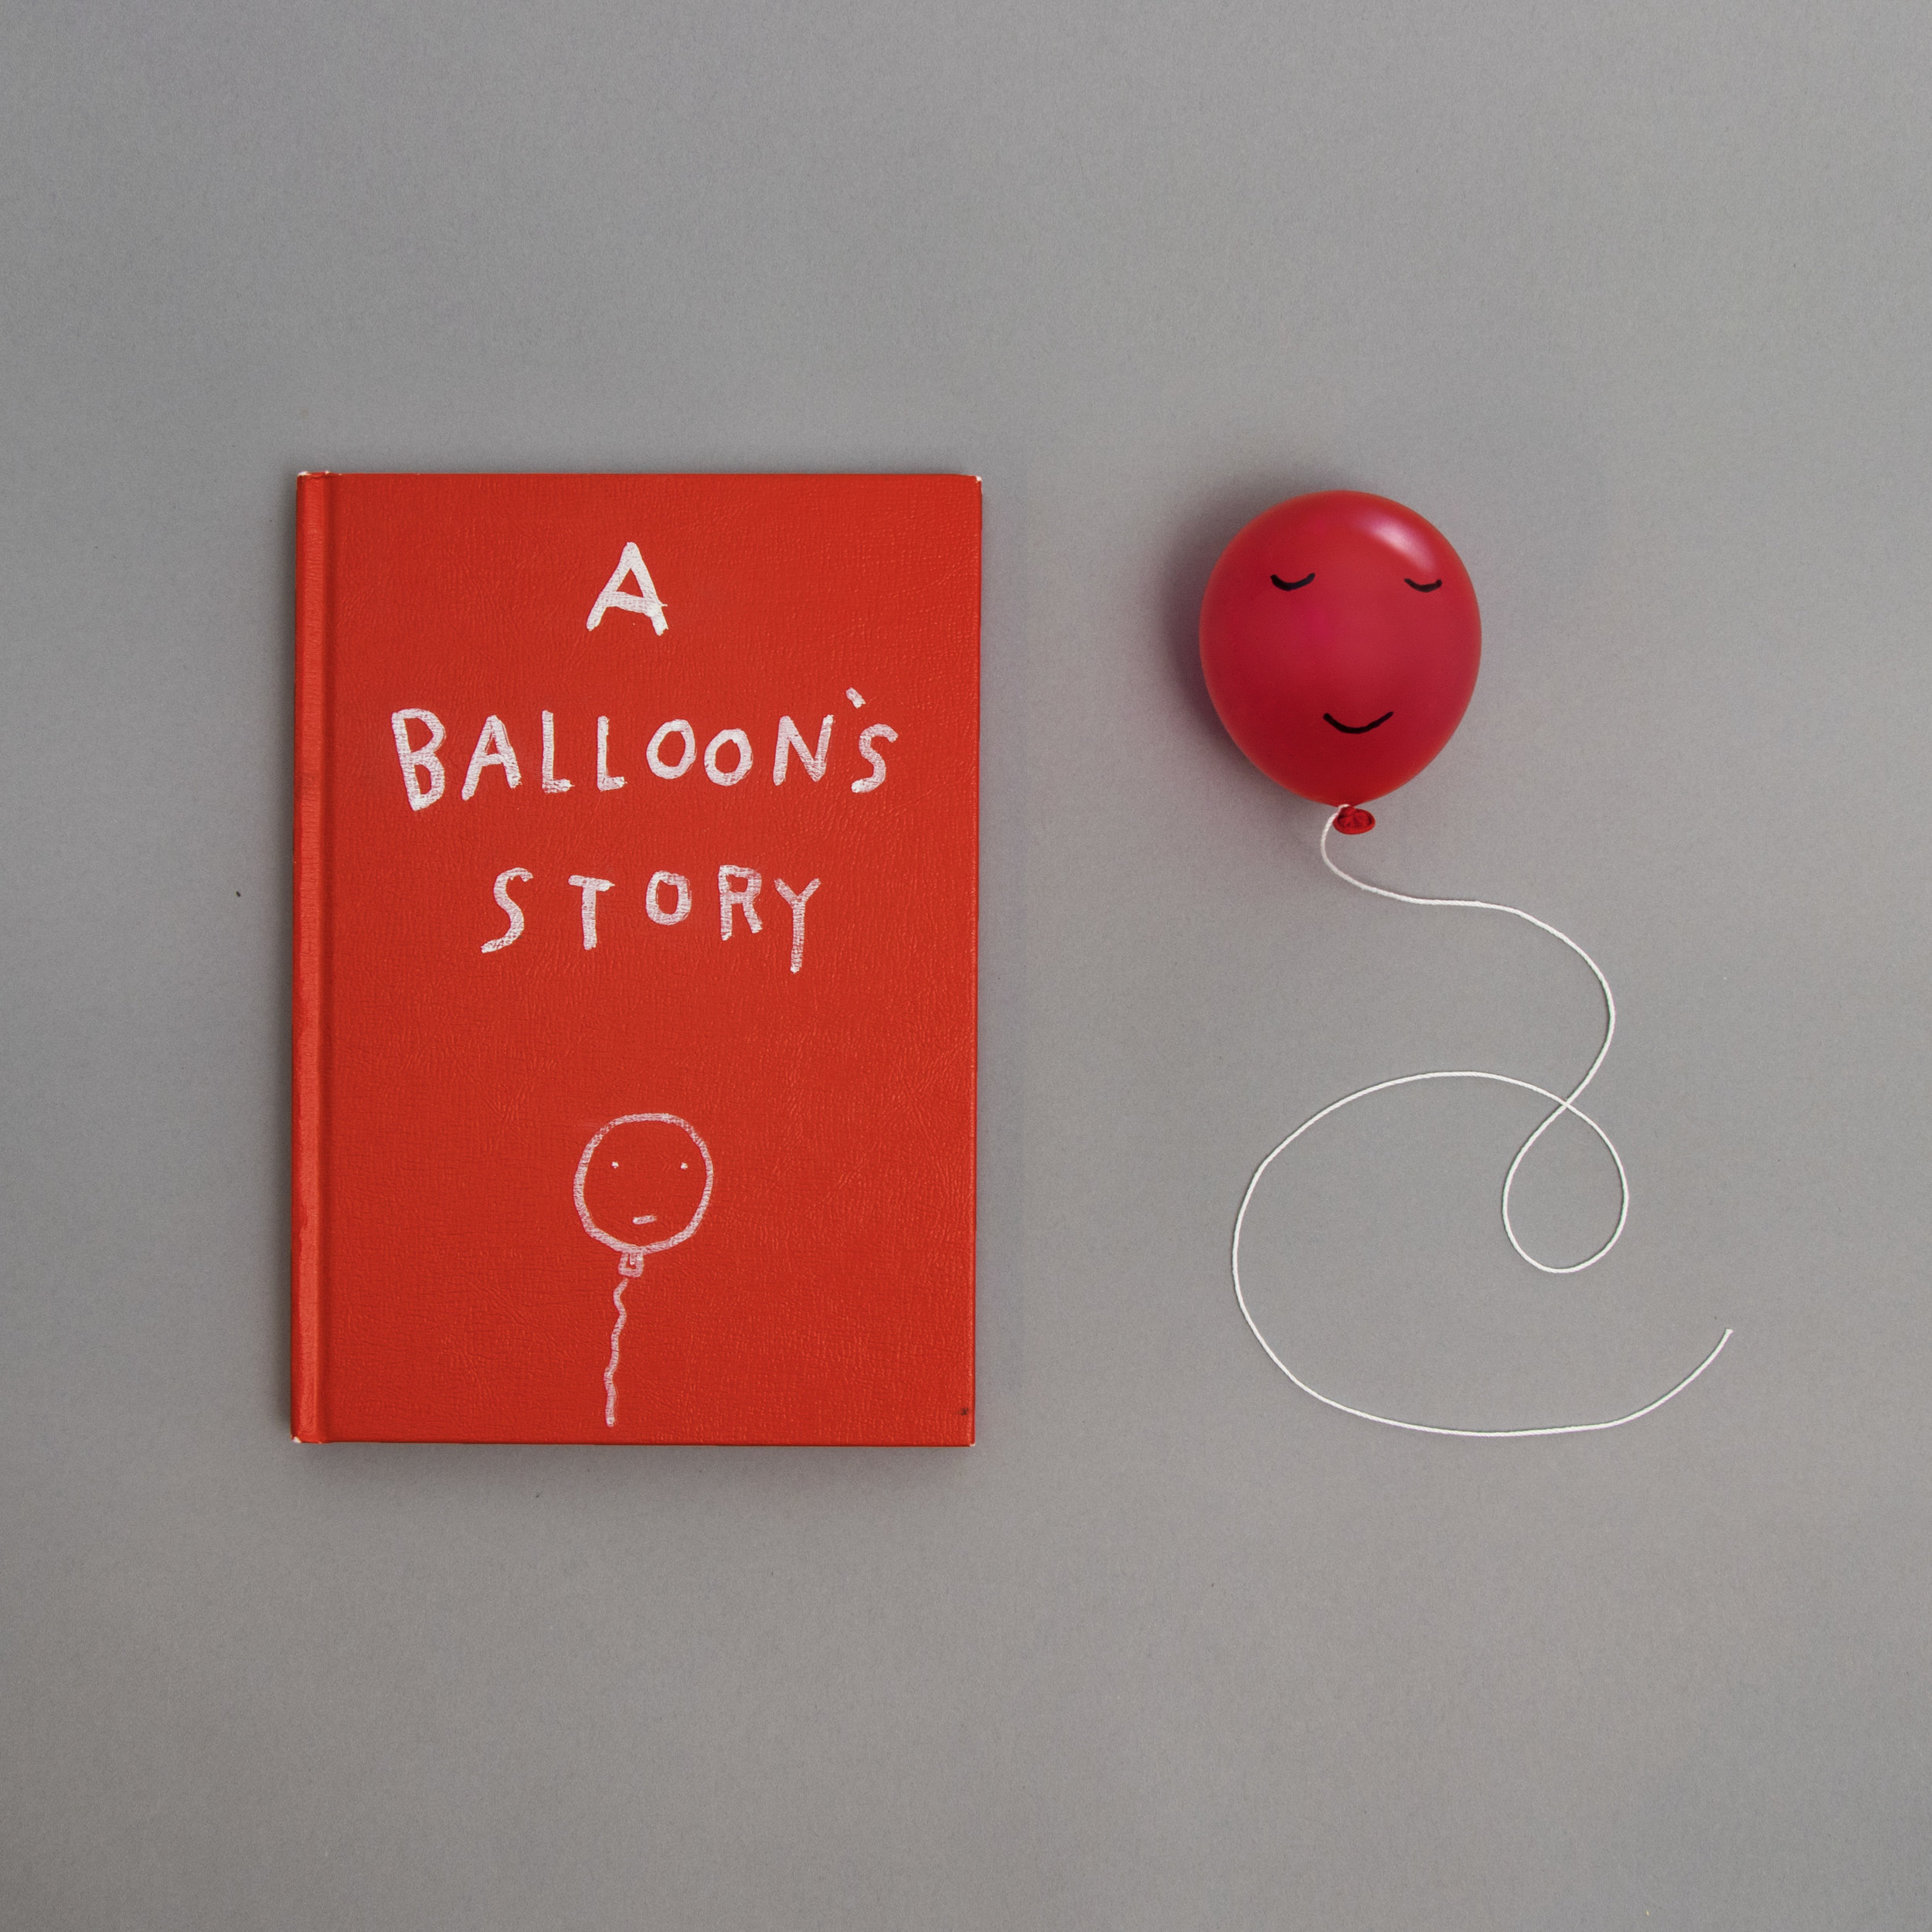 "LESSON 7:  A BALLOON'S STORY                          Normal     0                     false     false     false         EN-US     JA     X-NONE                                                                                                                                                                                                                                                                                                                                                                                                                                                                                                                                                                                                                                                                                                                  /* Style Definitions */ table.MsoNormalTable 	{mso-style-name:""Table Normal""; 	mso-tstyle-rowband-size:0; 	mso-tstyle-colband-size:0; 	mso-style-noshow:yes; 	mso-style-priority:99; 	mso-style-parent:""""; 	mso-padding-alt:0in 5.4pt 0in 5.4pt; 	mso-para-margin:0in; 	mso-para-margin-bottom:.0001pt; 	mso-pagination:widow-orphan; 	font-size:12.0pt; 	font-family:Cambria; 	mso-ascii-font-family:Cambria; 	mso-ascii-theme-font:minor-latin; 	mso-hansi-font-family:Cambria; 	mso-hansi-theme-font:minor-latin;}       Everyone has fears about the future. Even the happiest people sometimes worry about tomorrow. A bright red balloon shows how fears can be faced and today embraced."